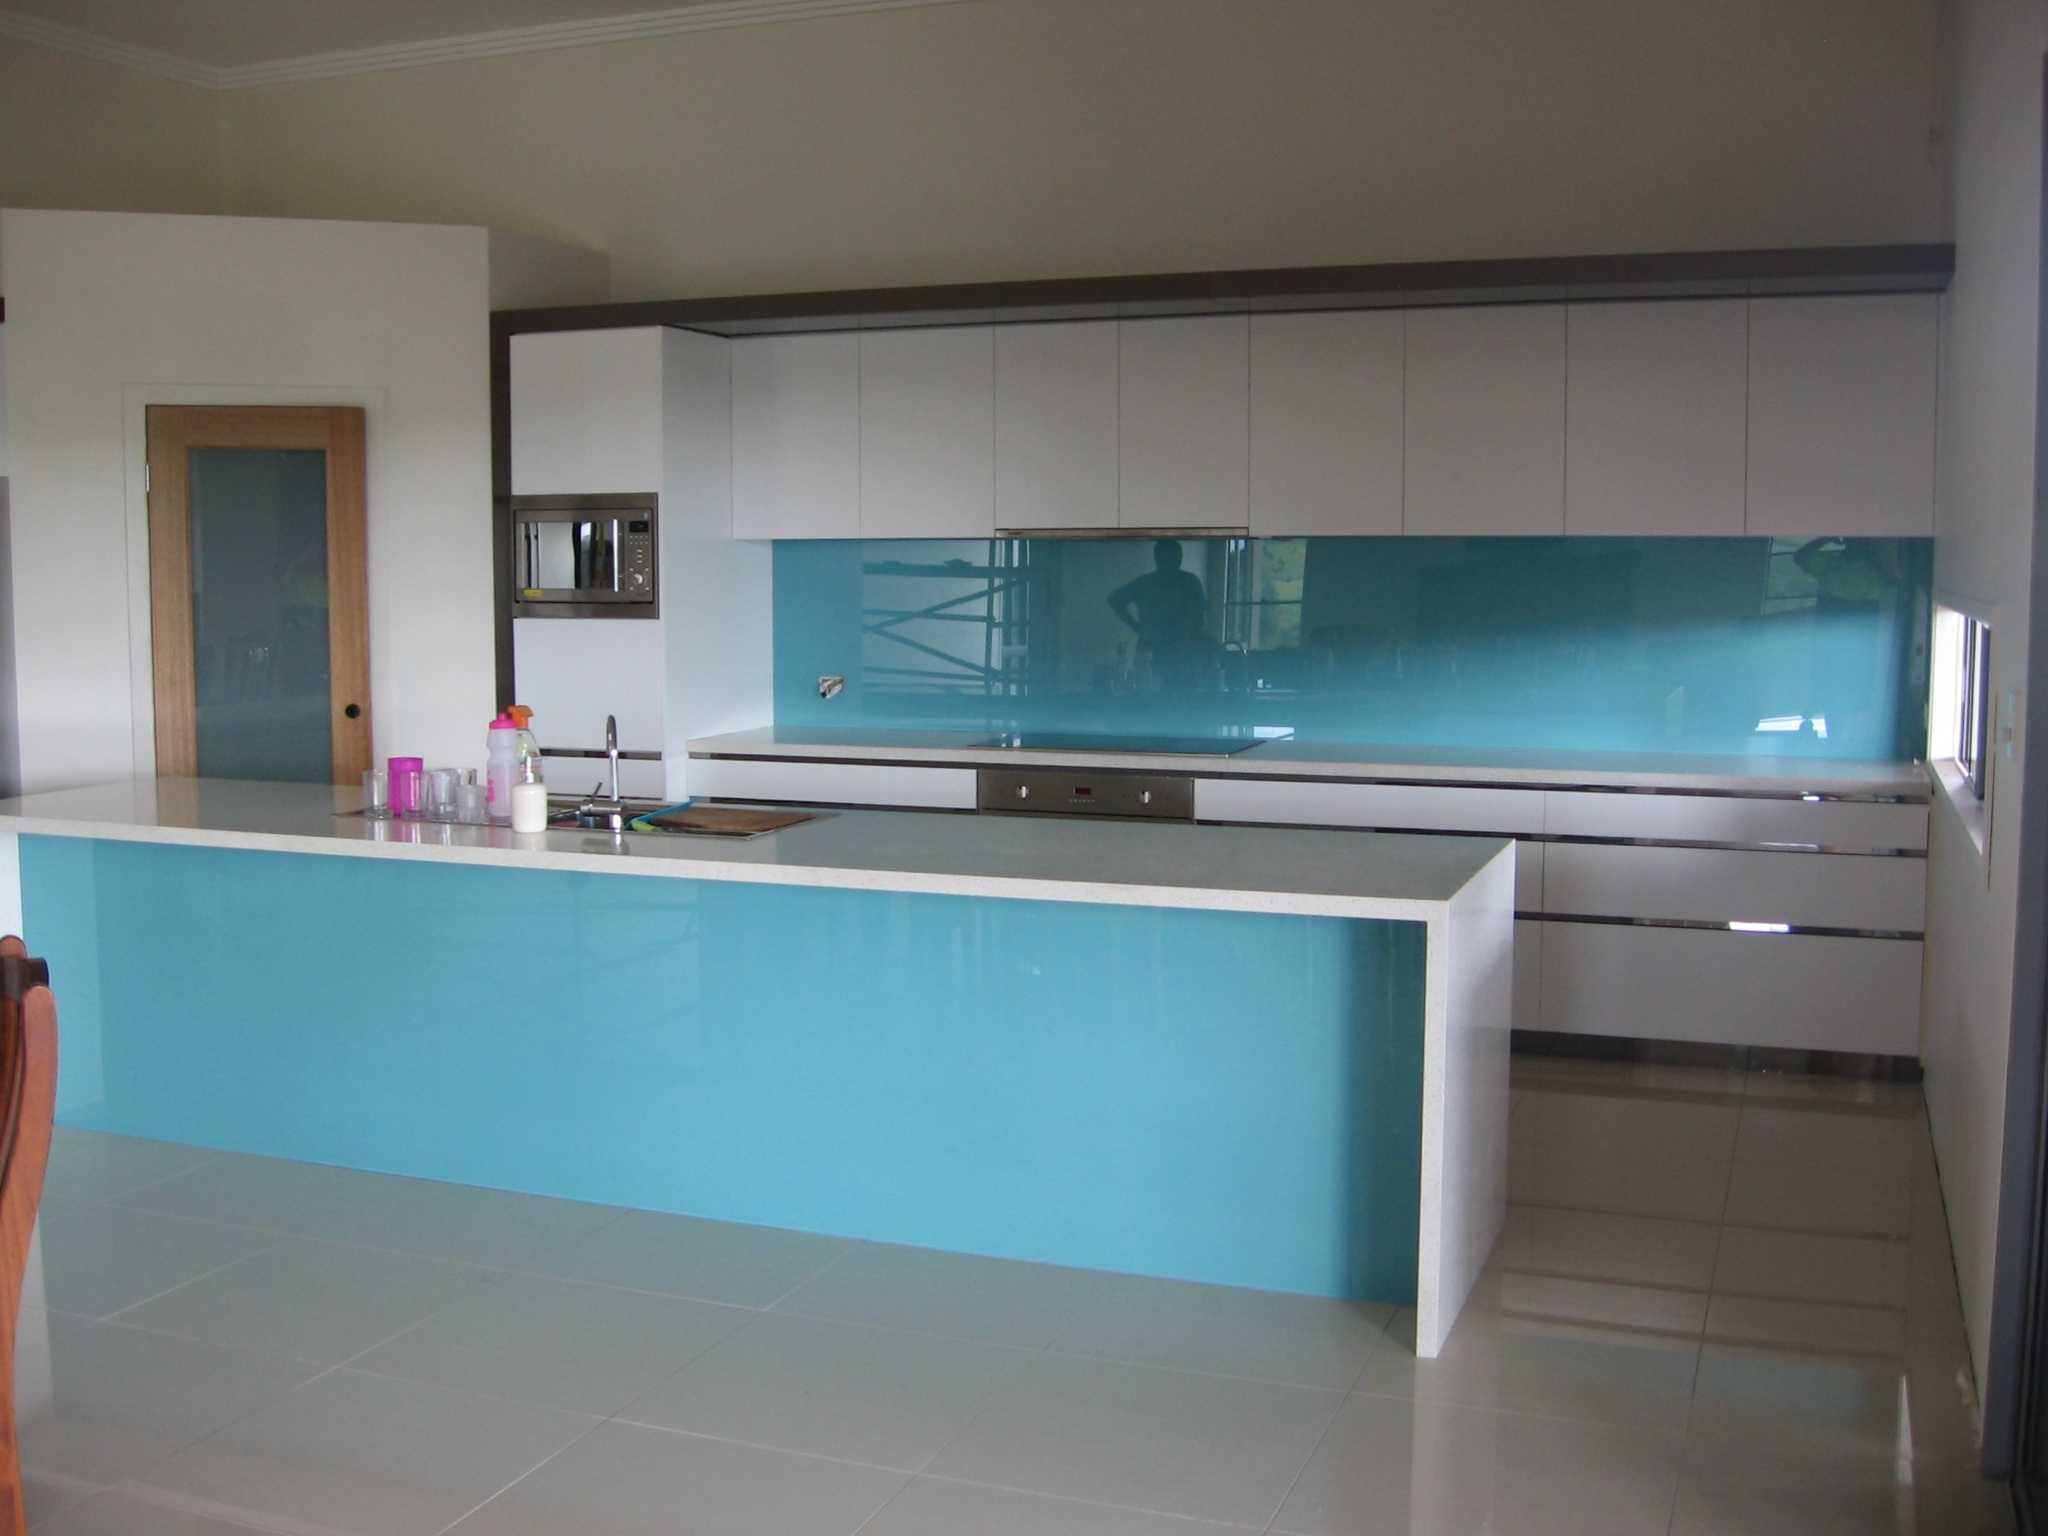 Matching Blue Splashback